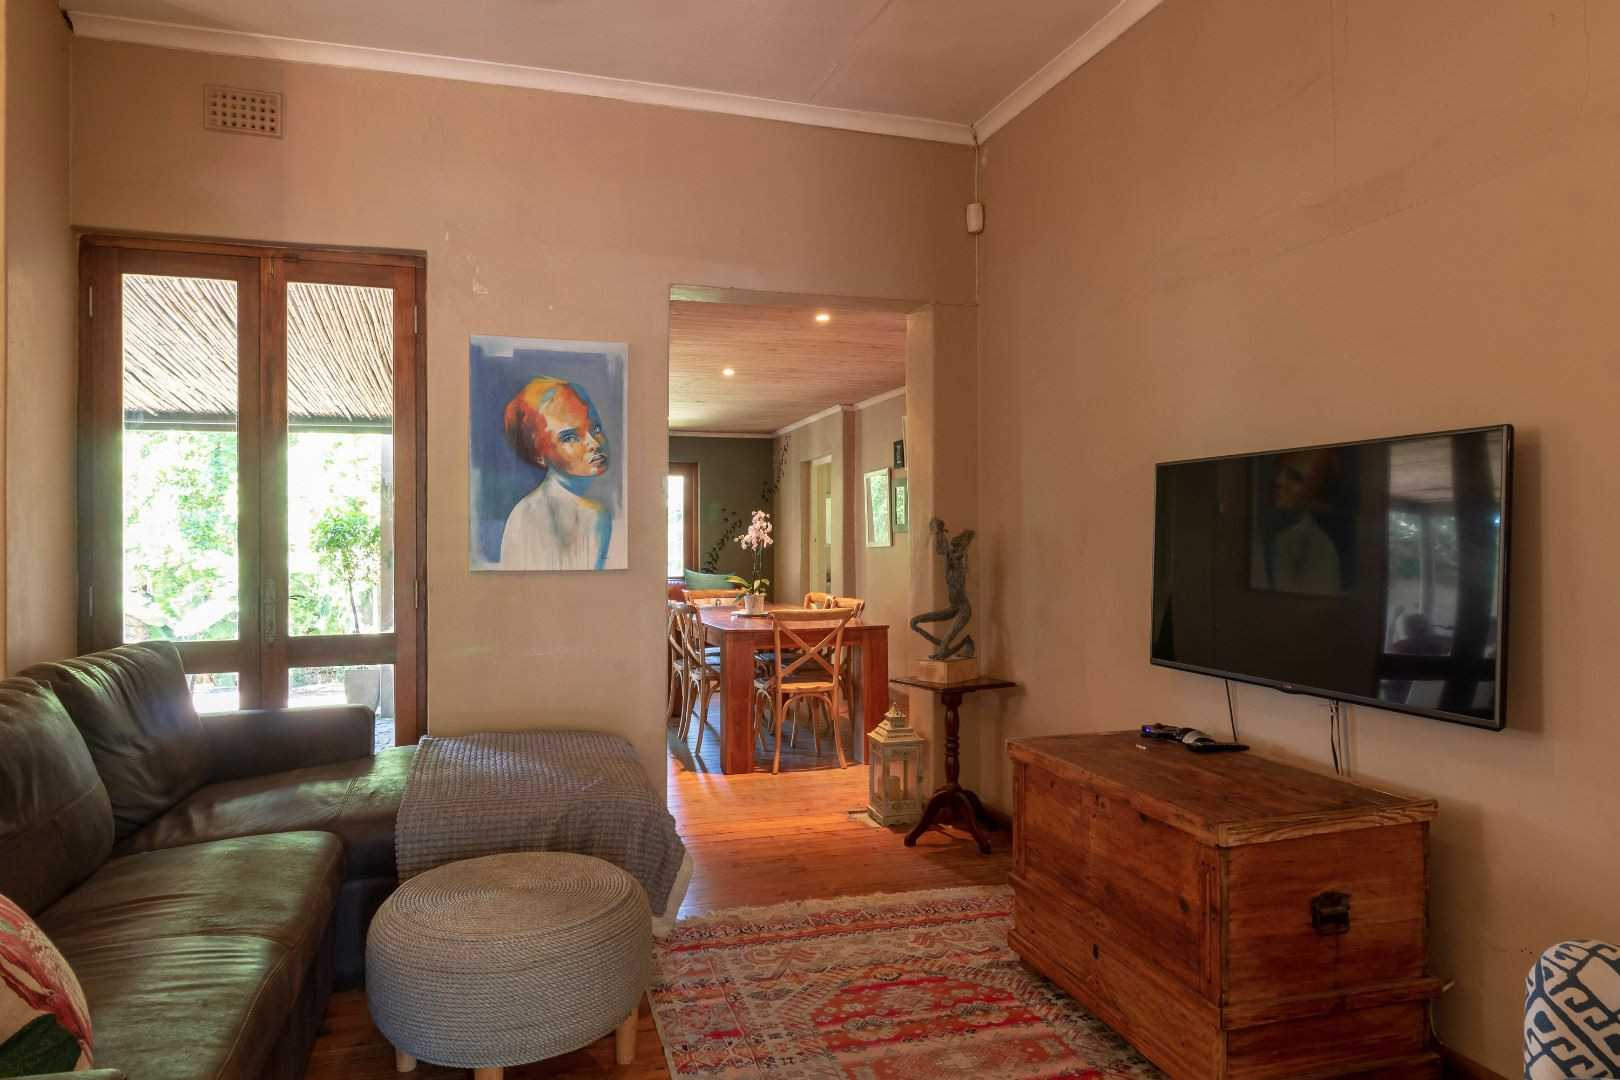 Cozy and Quirky in Oakdale - R1,779,000